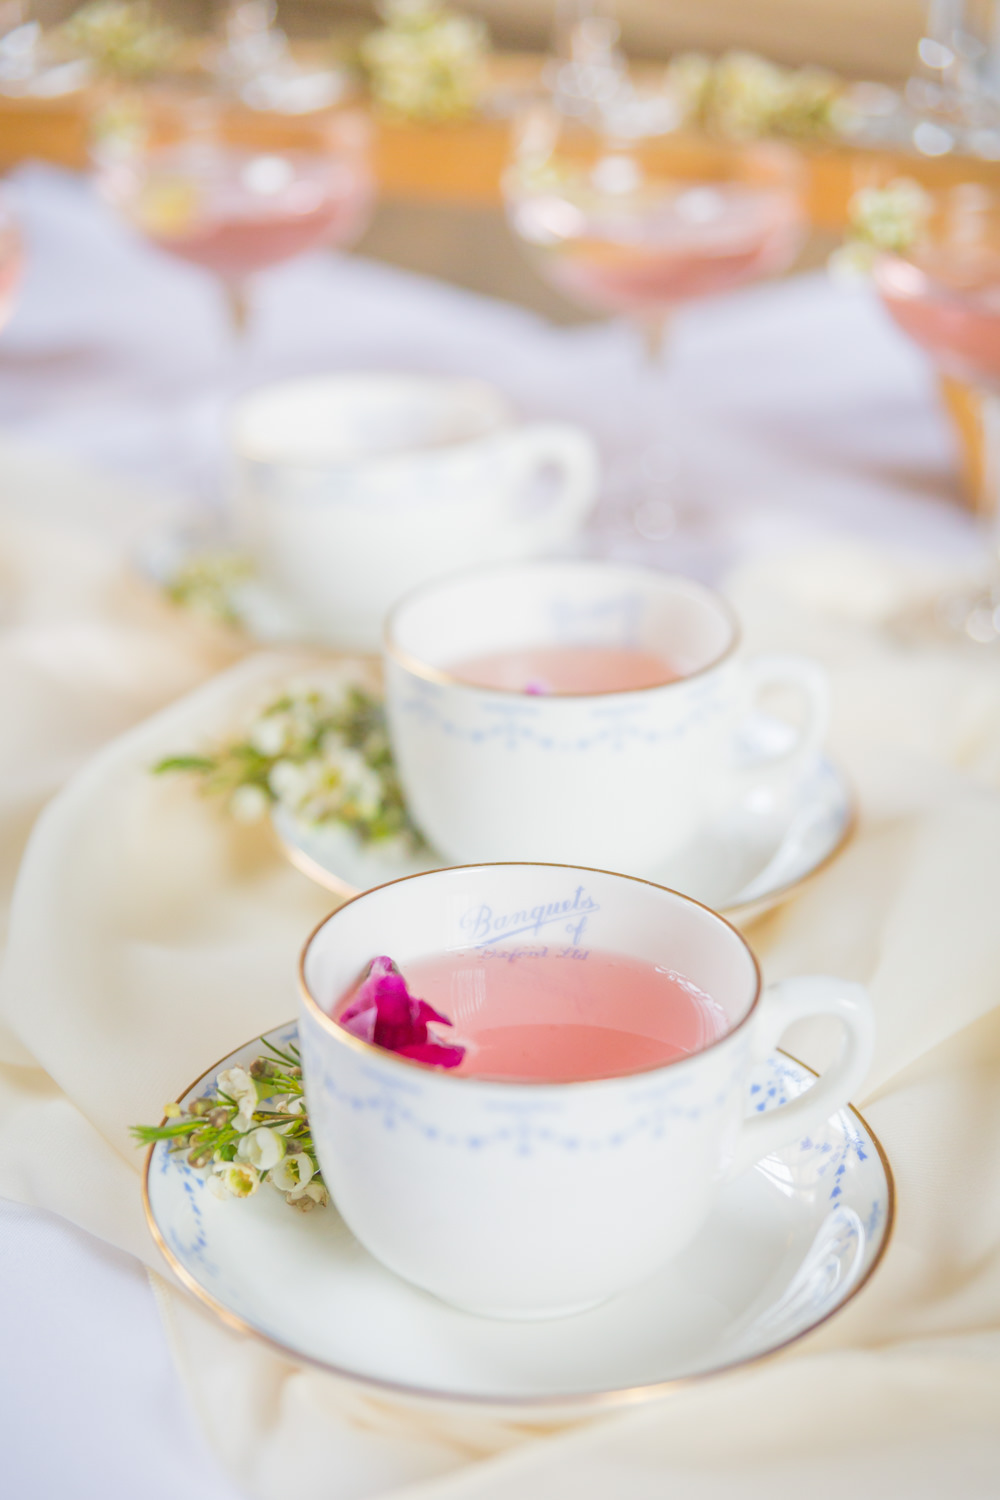 Teacup Cocktail Bodleian Library Wedding Anita Nicholson Photography